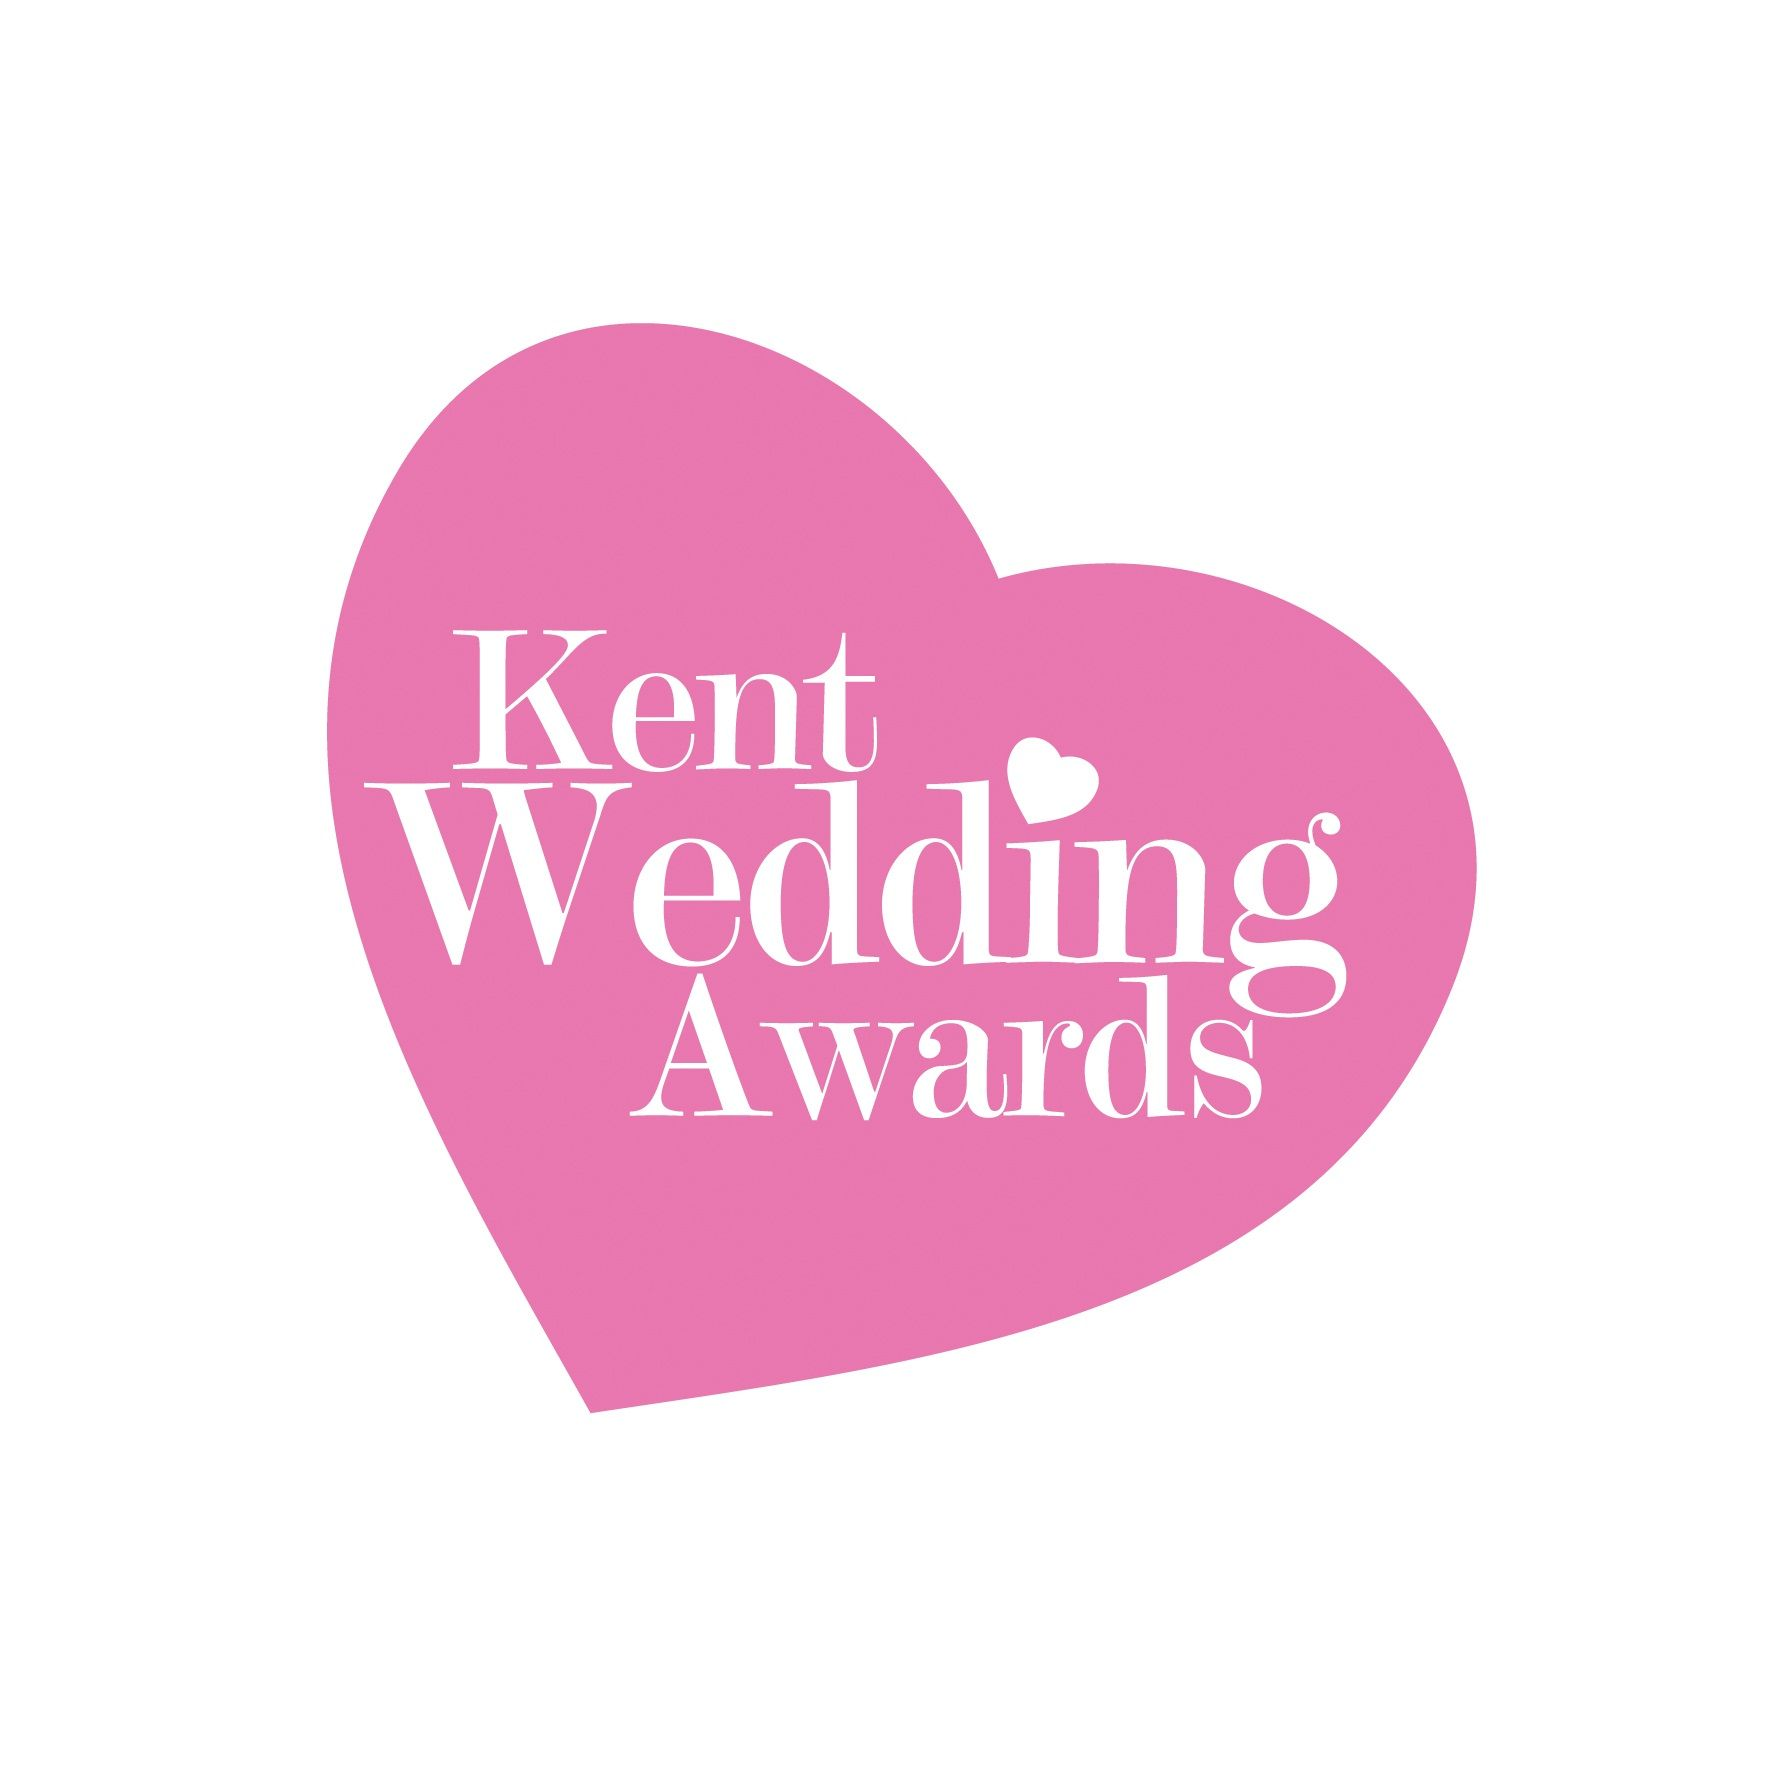 We are the official Media Partner to the Kent Wedding Awards. To ...